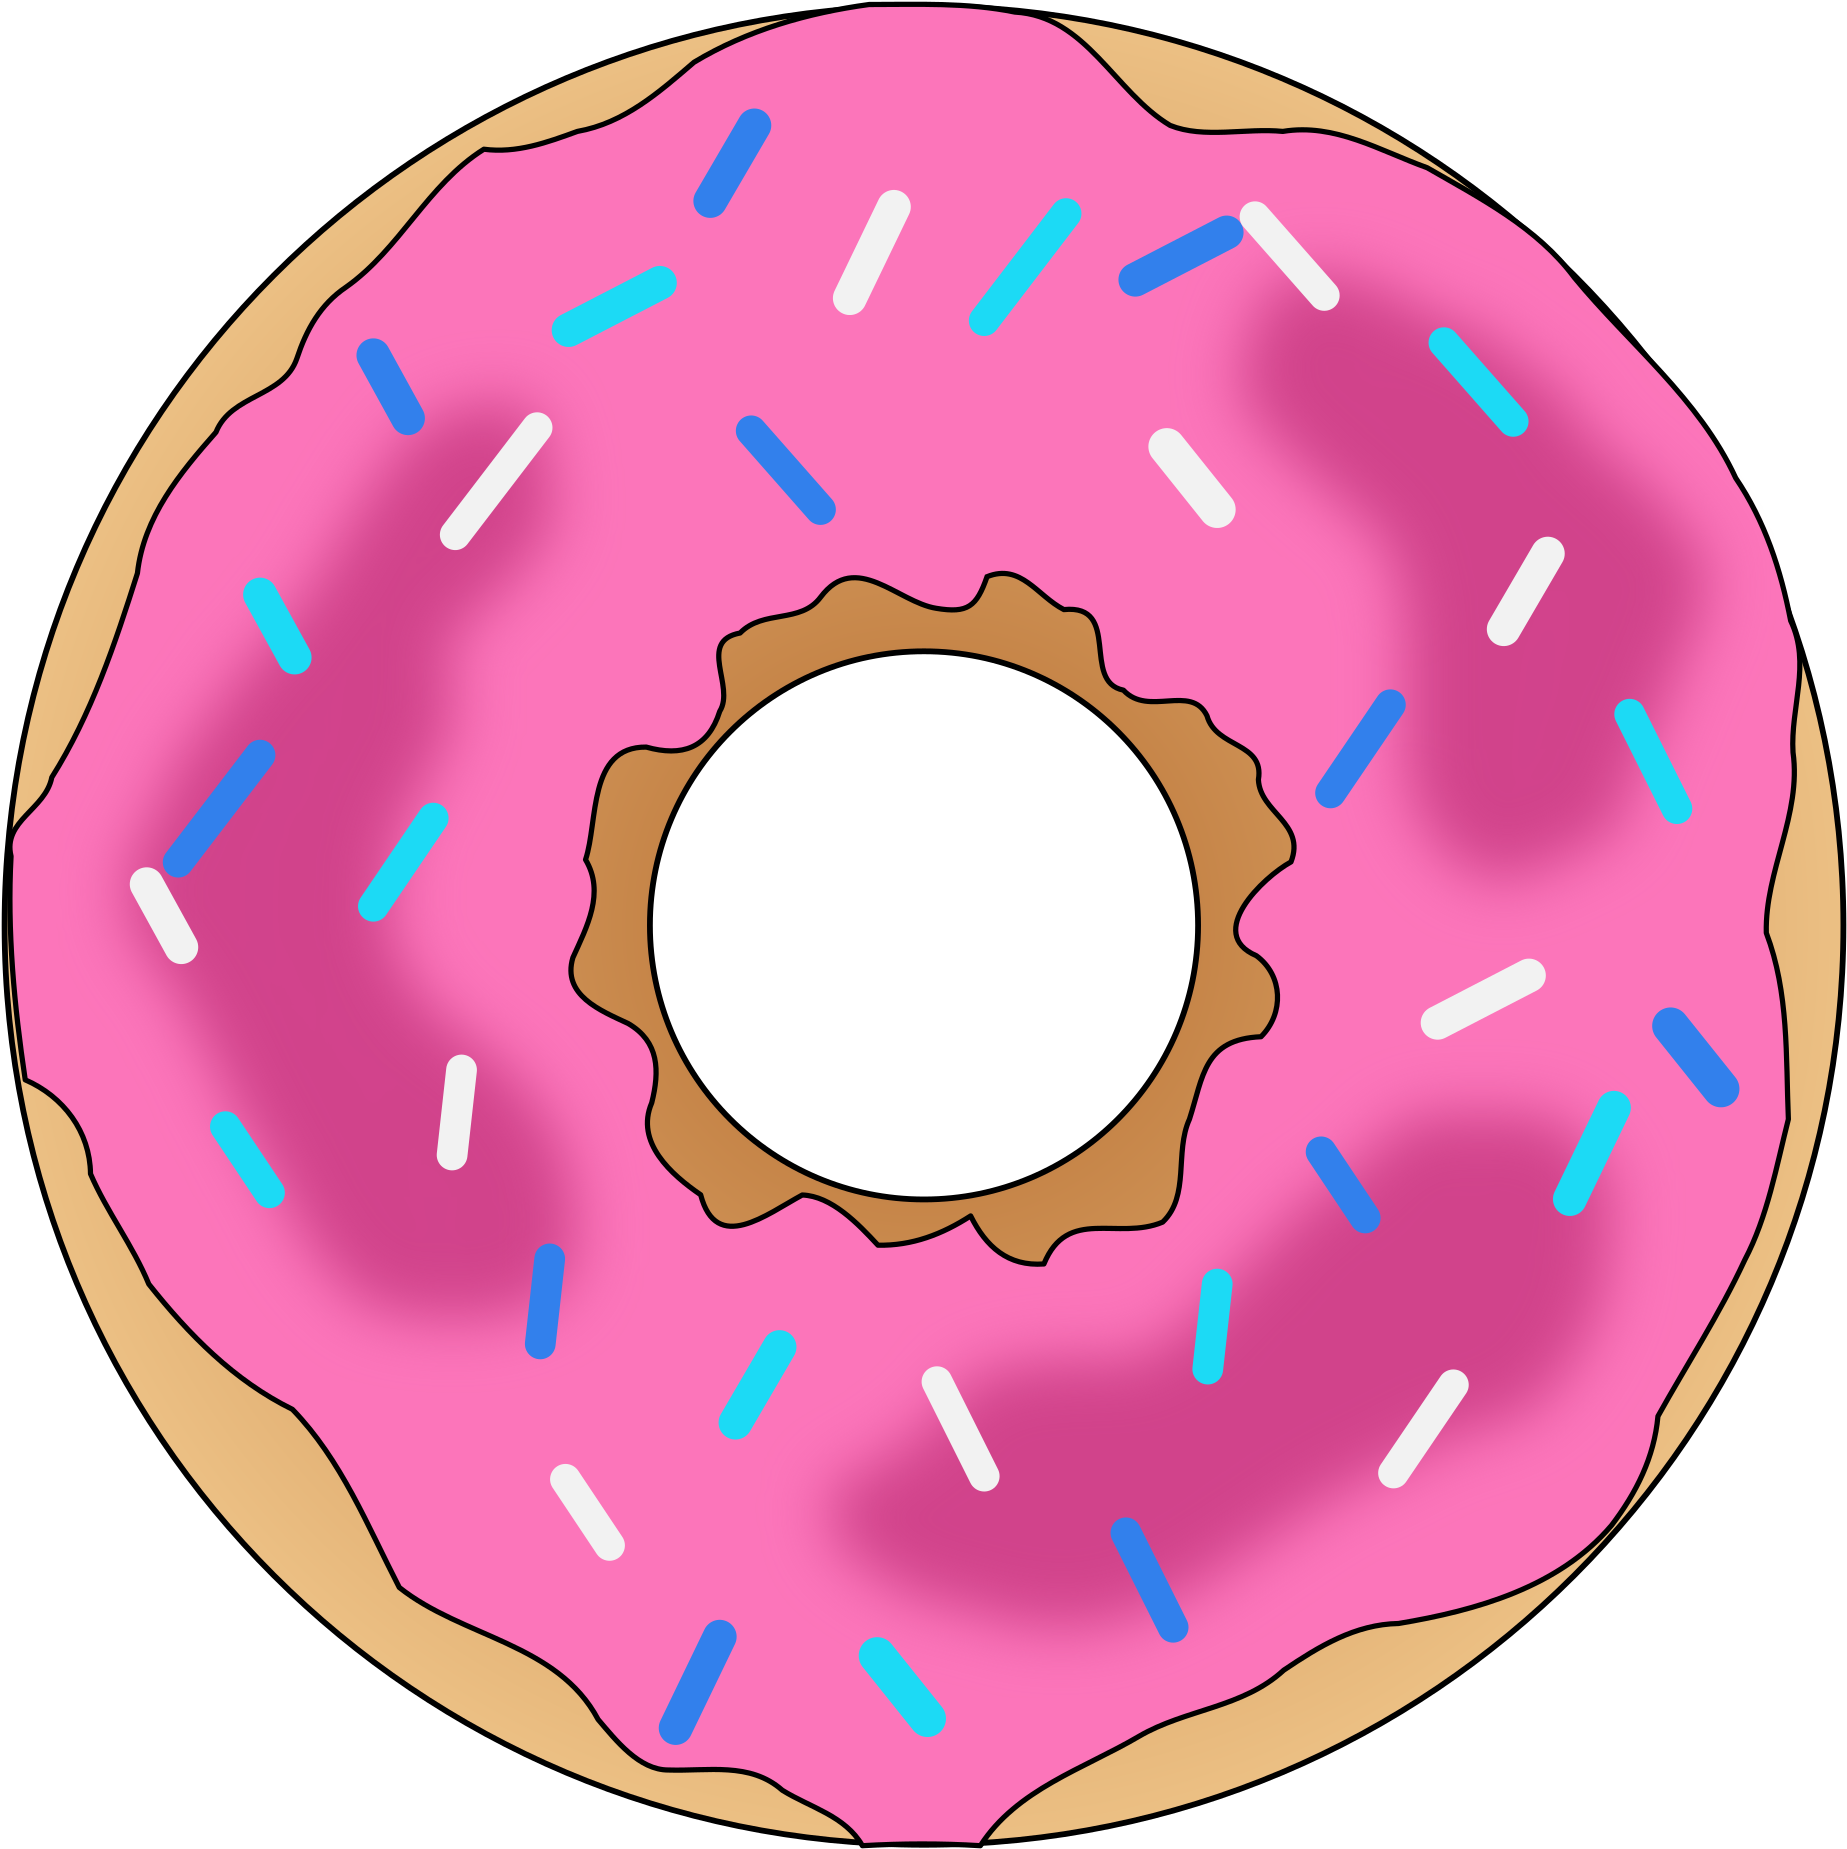 Pink donut png. Download hd icons transparent